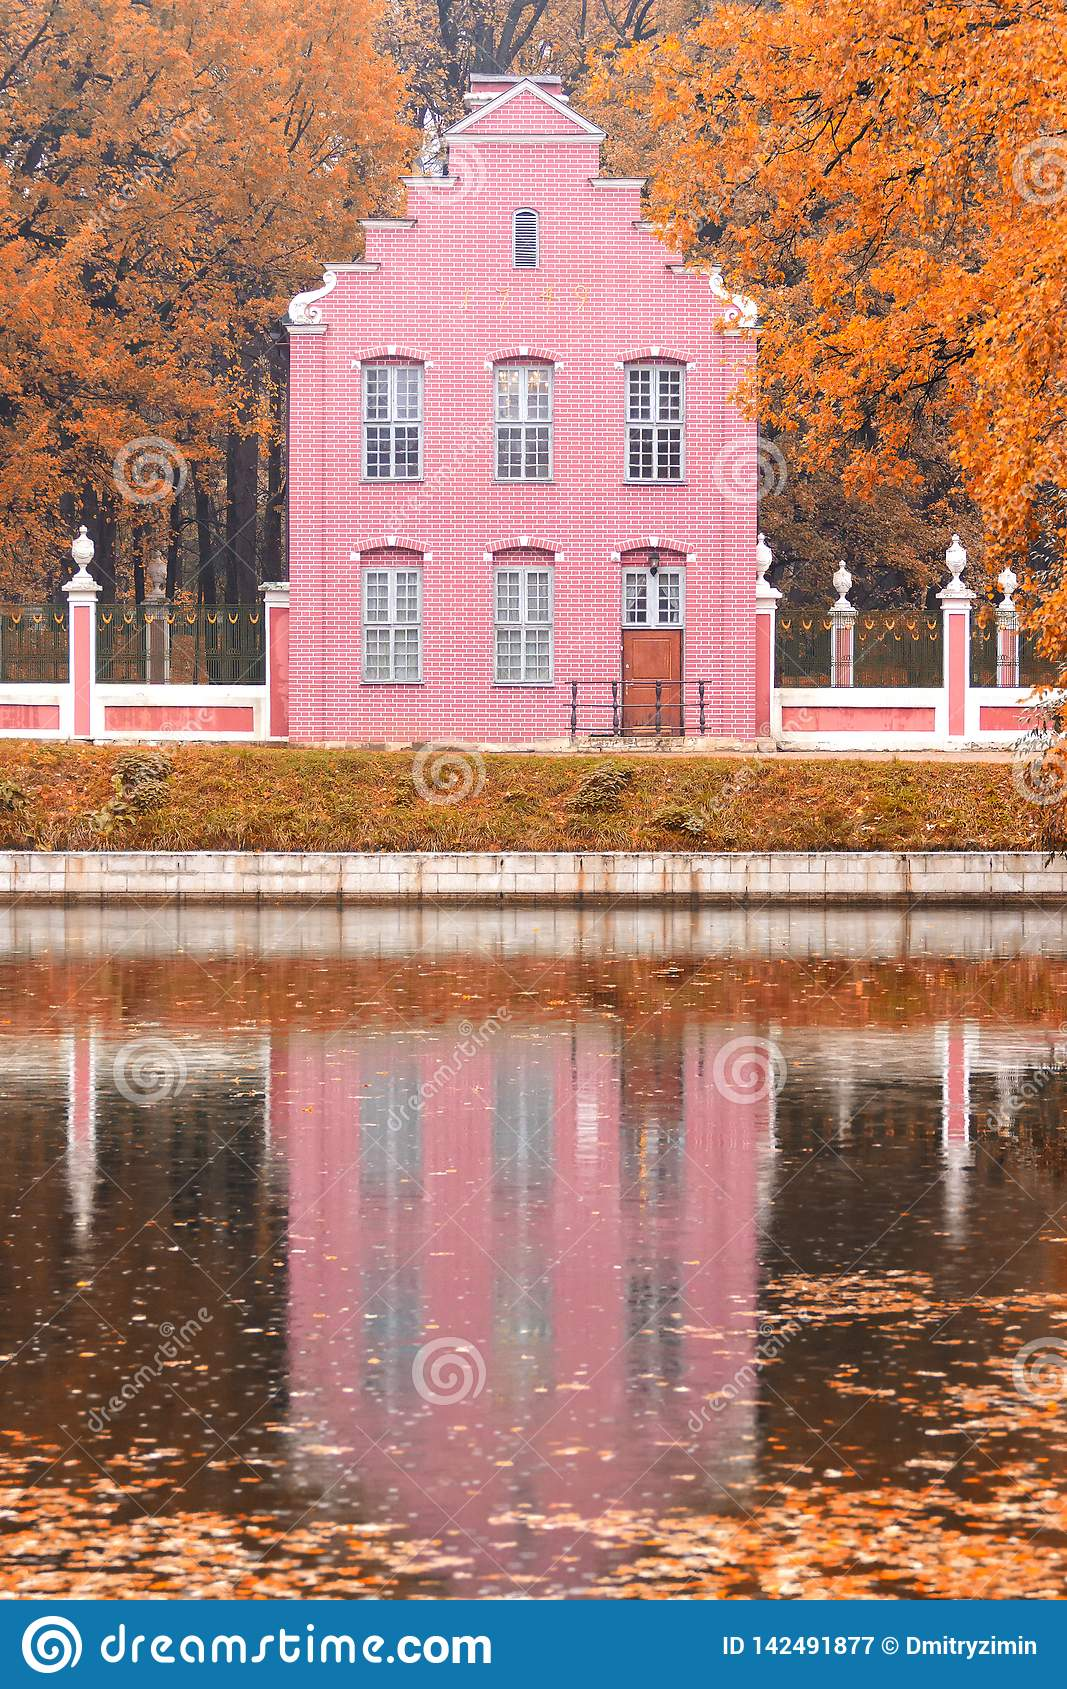 Pond and an old Dutch house in the autumn landscape in Moscow, Kuskovo, Russian Federation